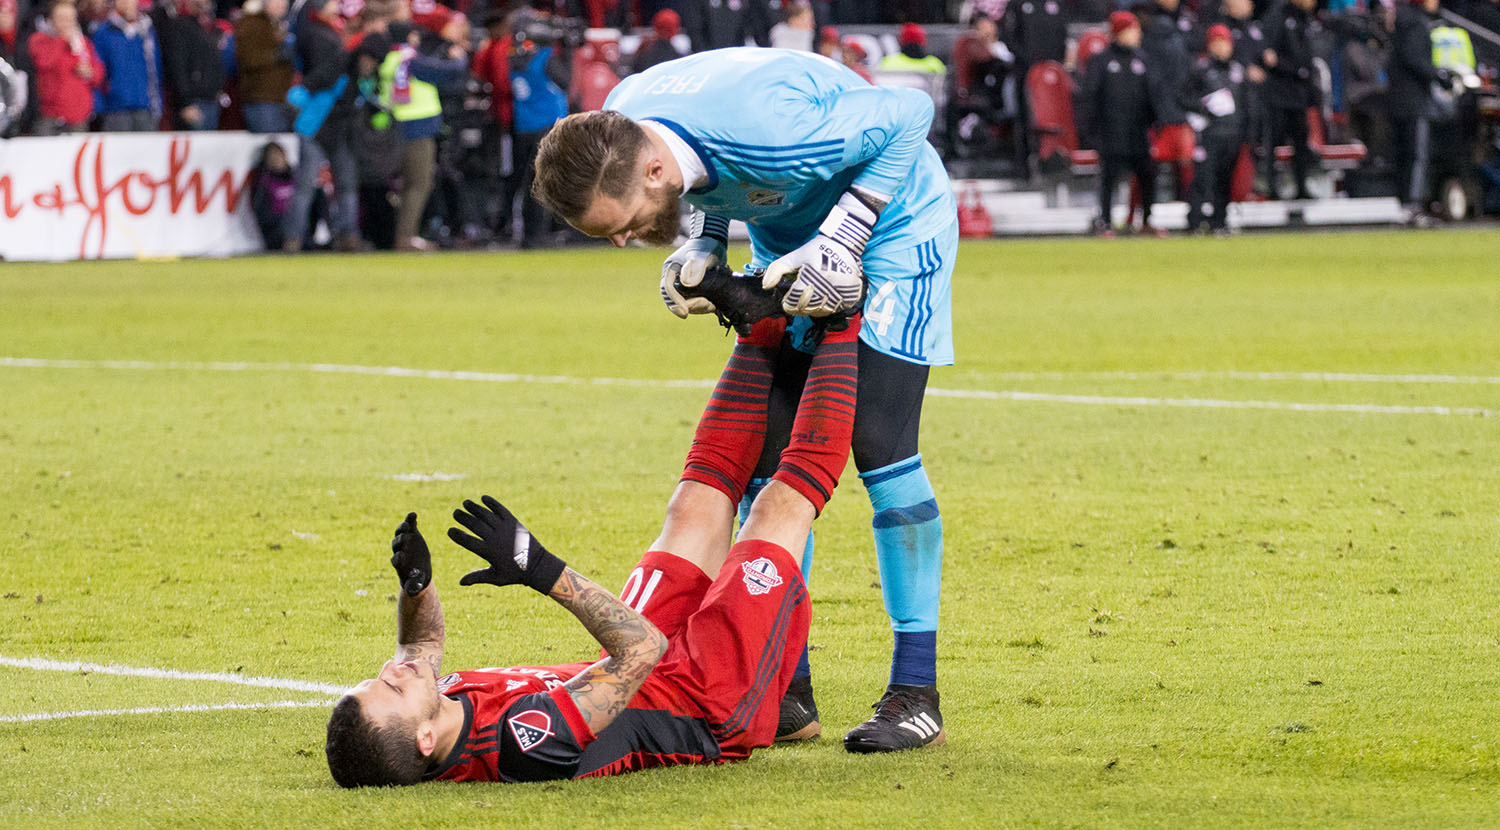 Stefan Frei helps out Sebastian Giovinco after cramping up on the ground in the attacking 18 yard box.Image by Dennis Marciniak of denMAR Media.